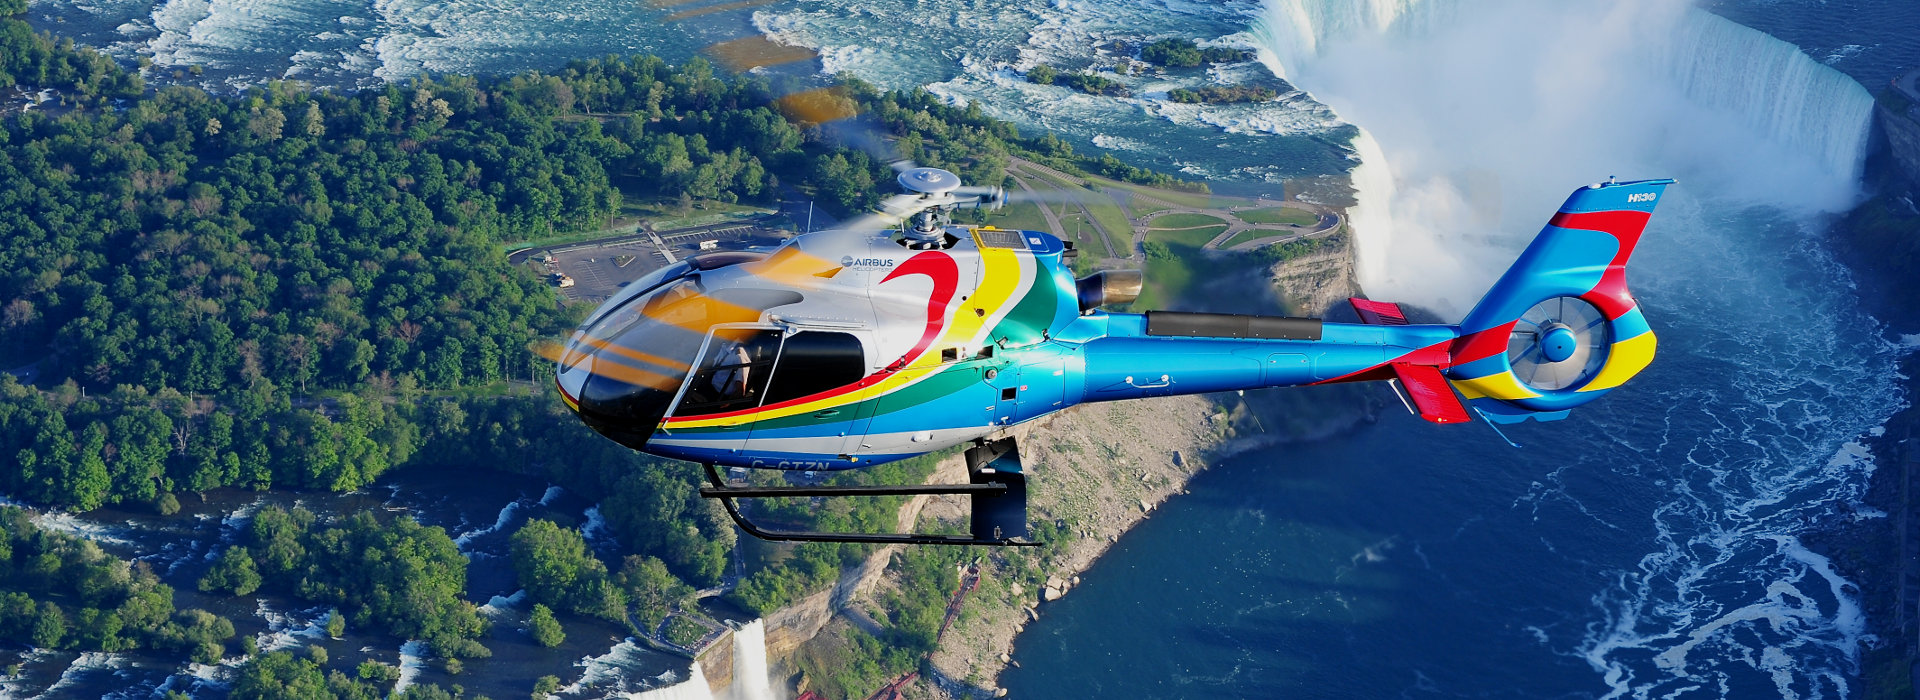 helicopter-niagara-falls-tours-